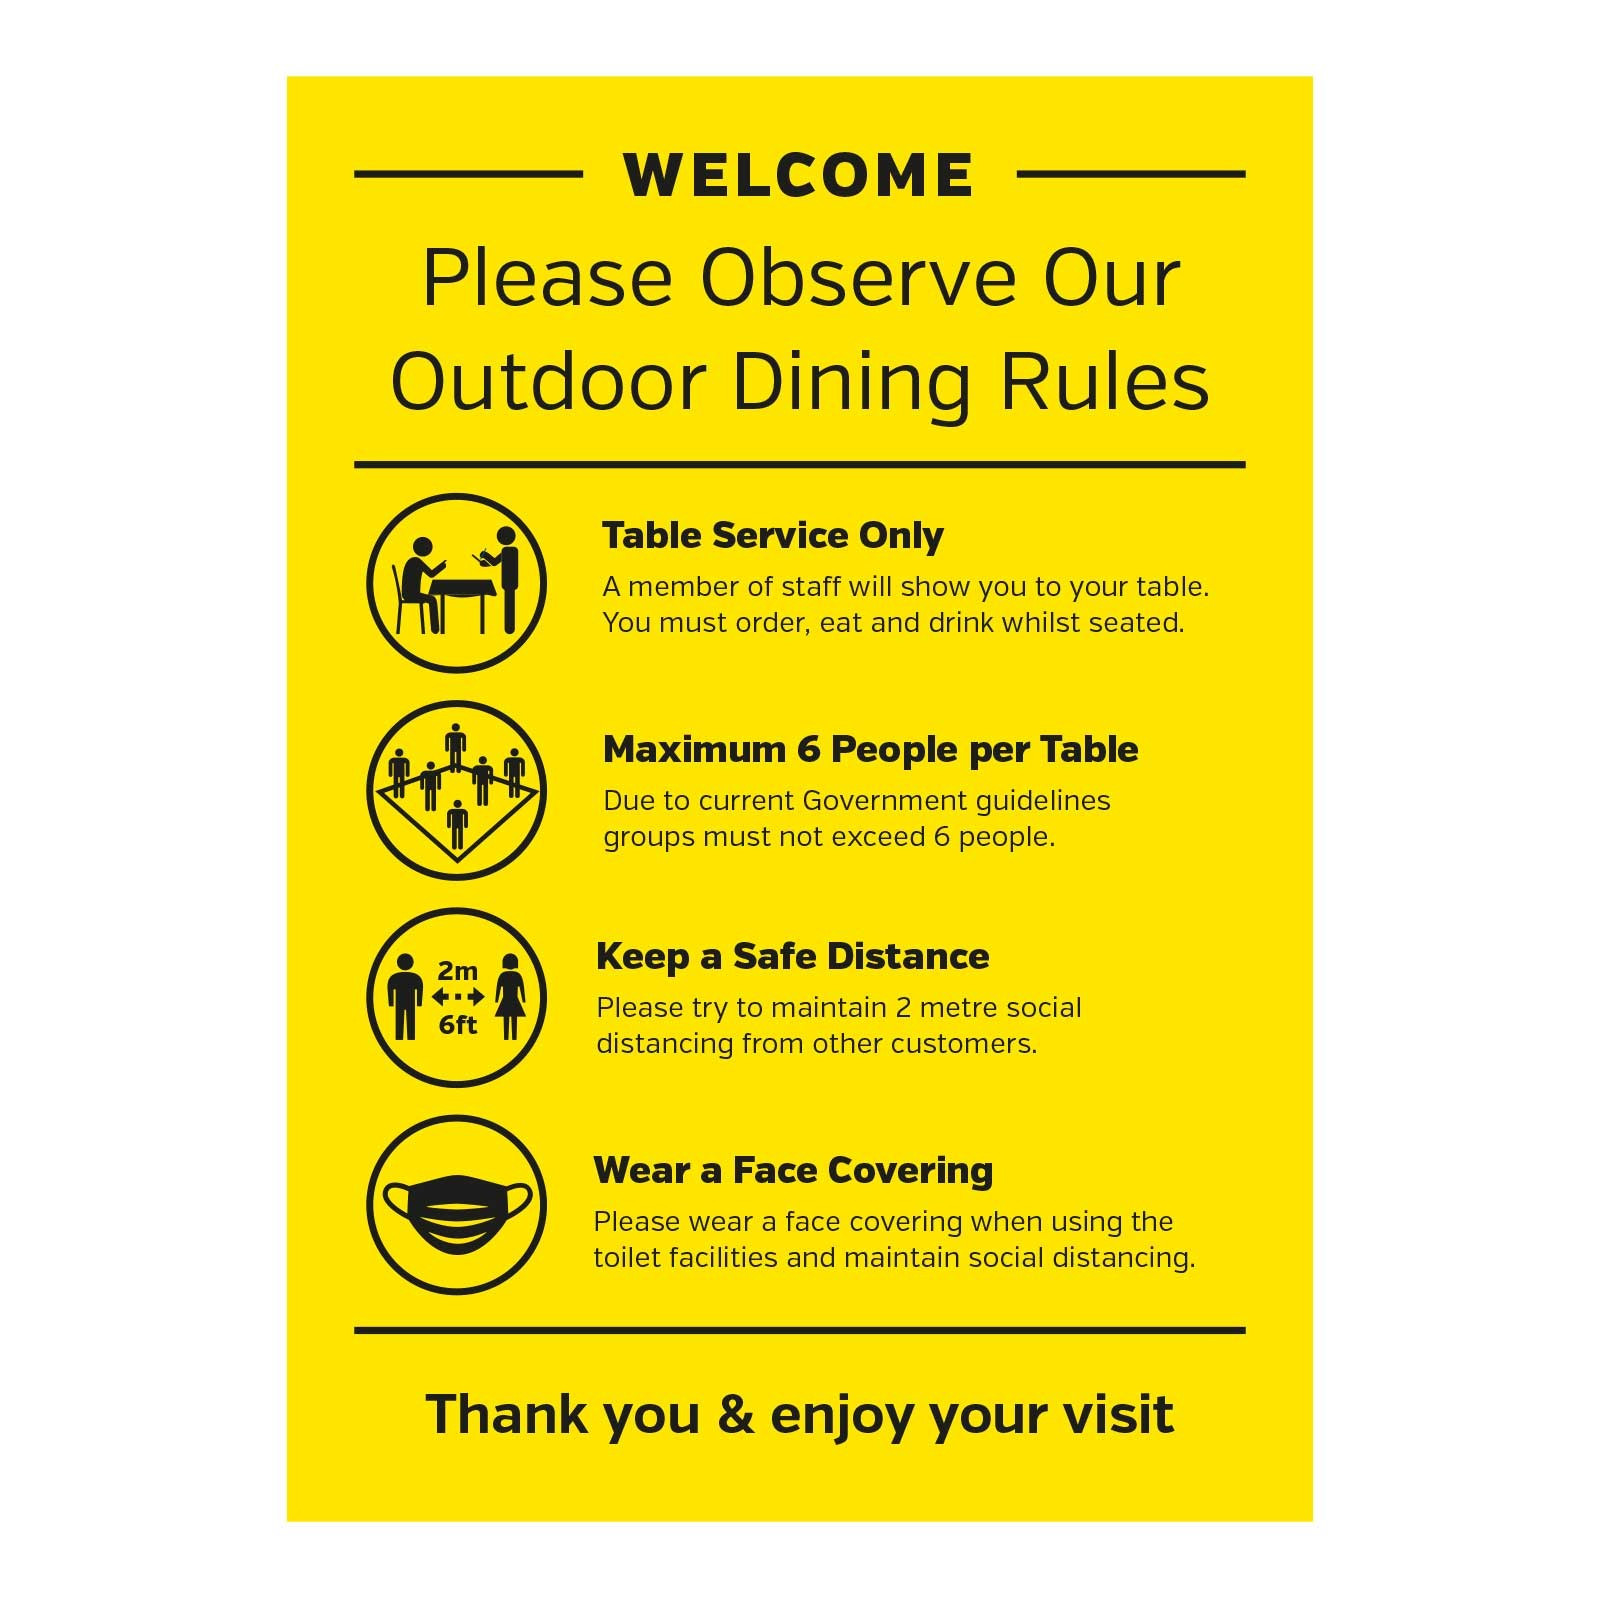 Outdoor Dining - Welcome please observe our outdoor dining rules